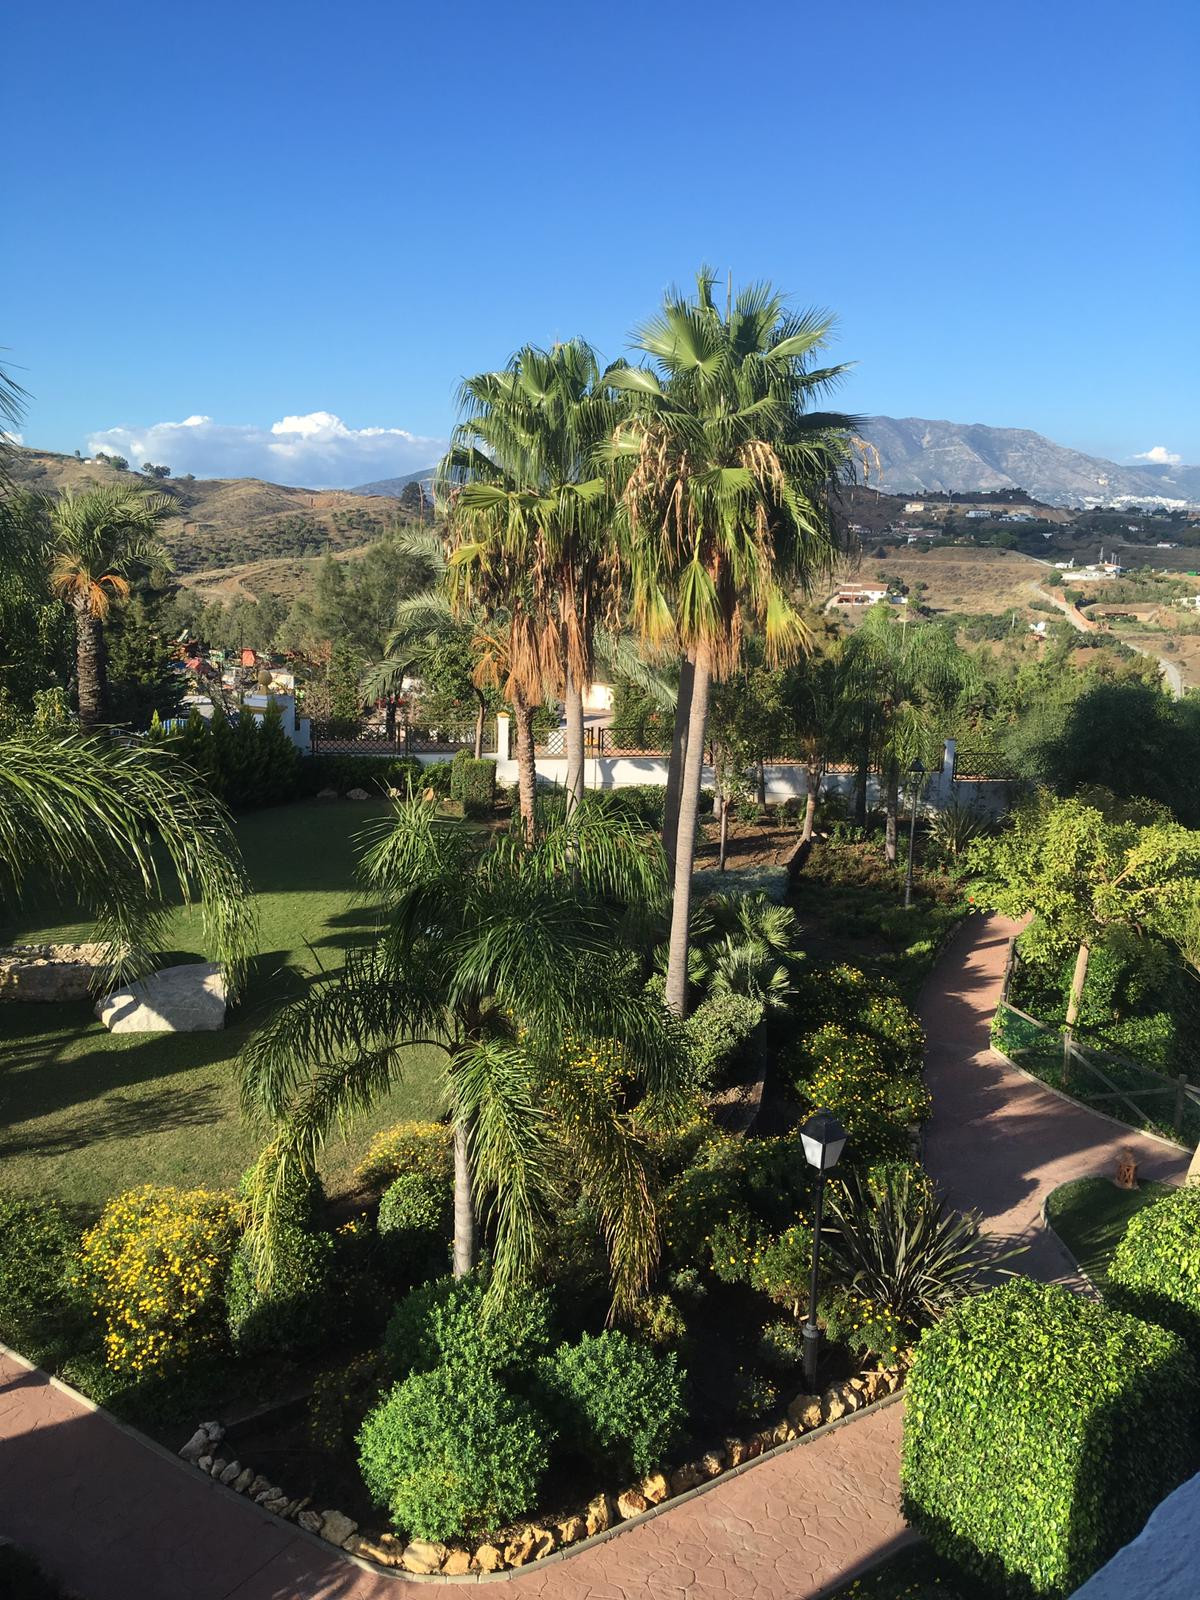 Property located in the upper part of Cala de Mijas with fabulous views of the golf course and the s, Spain